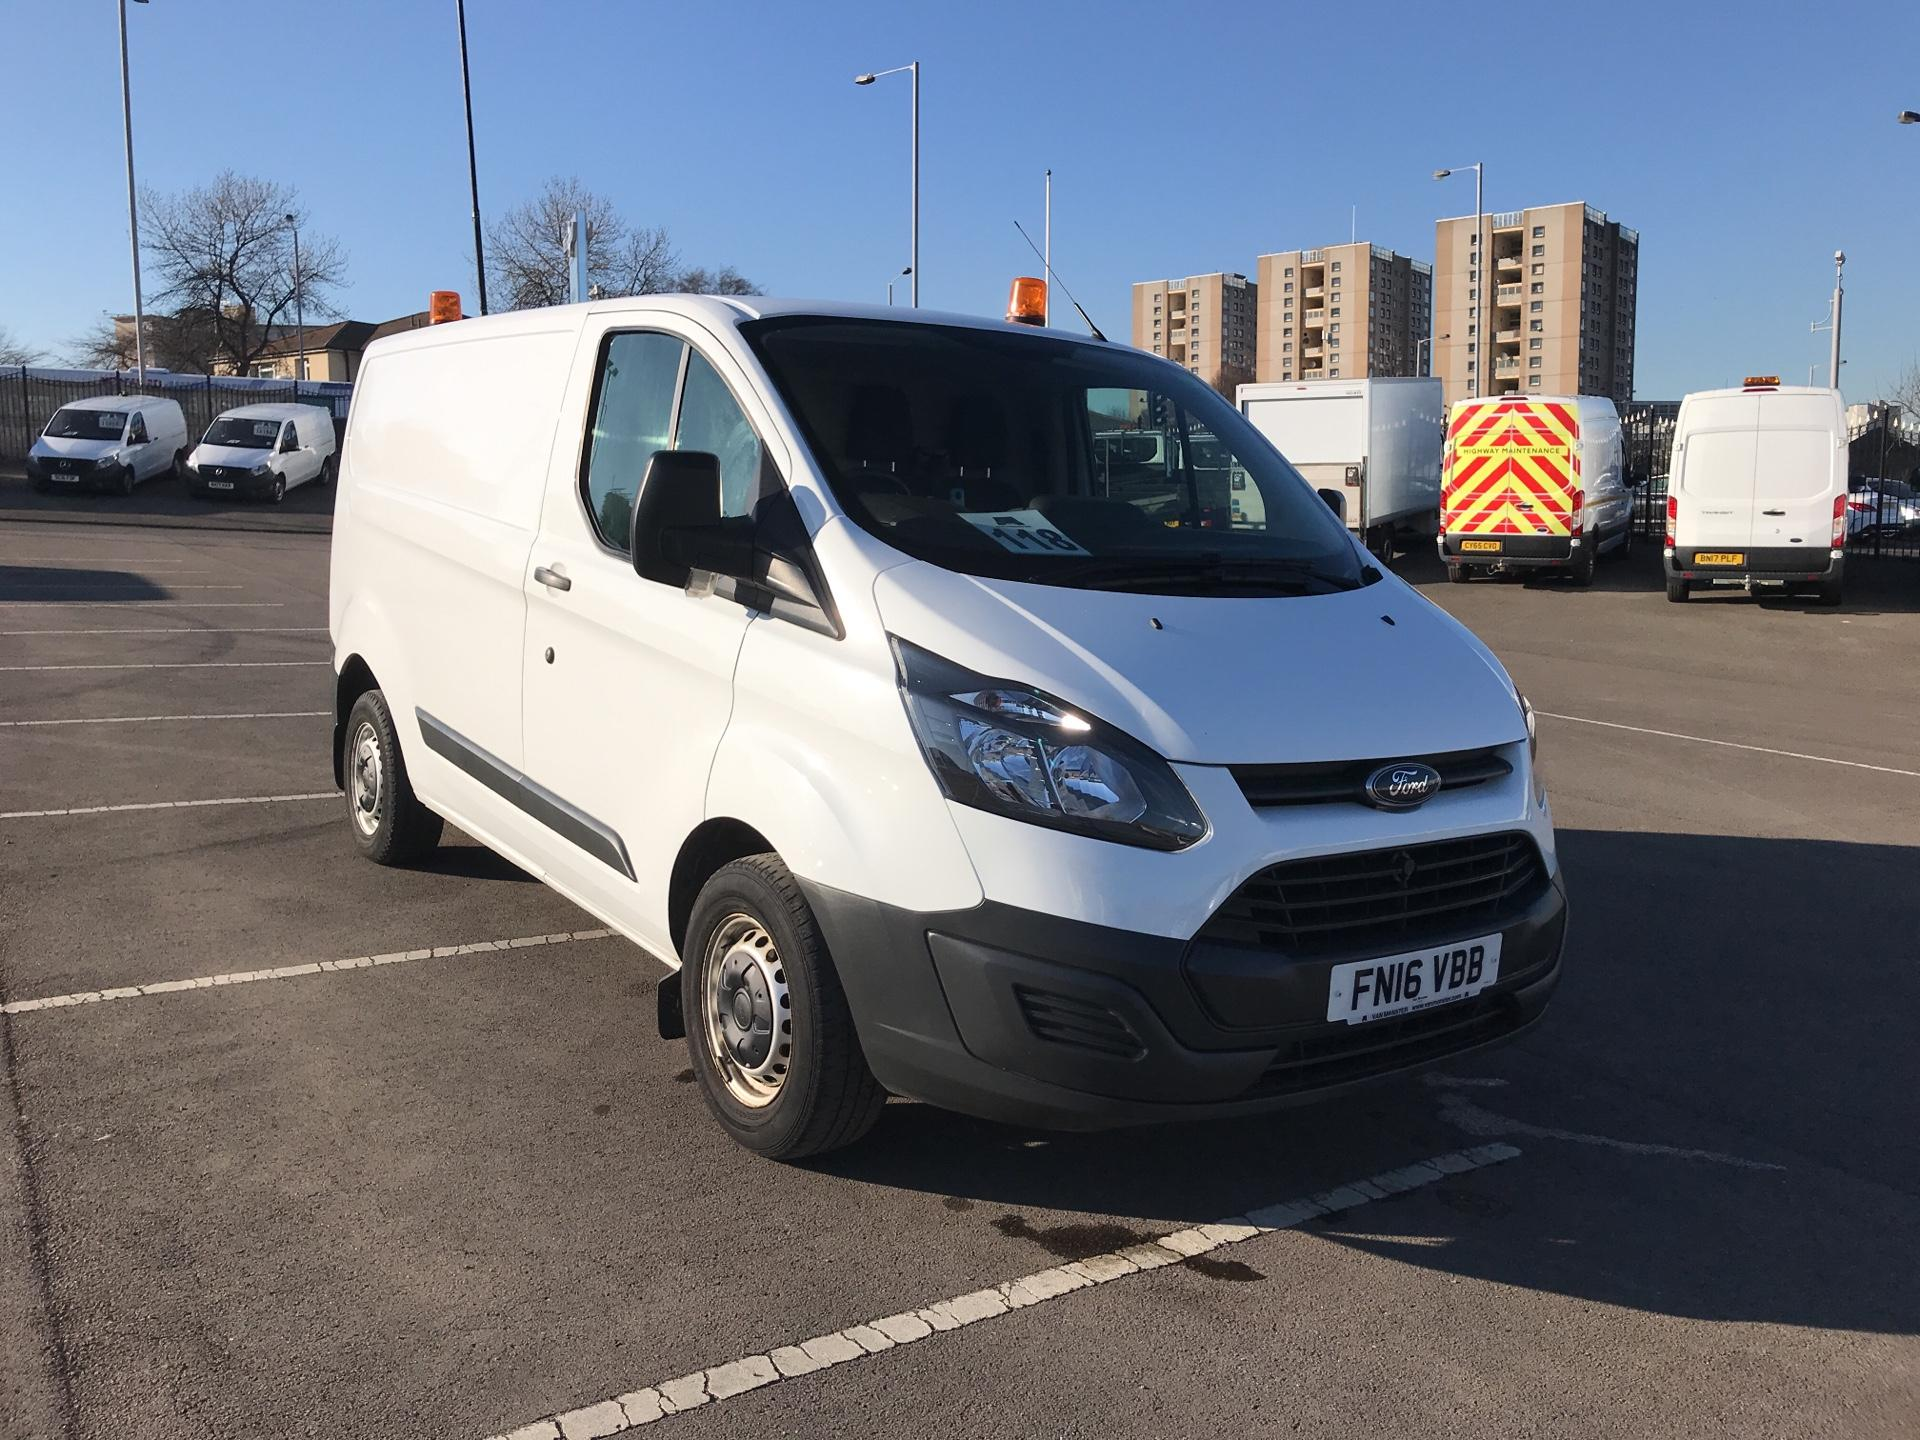 2016 Ford Transit Custom 270 L1 DIESEL FWD 2.2  TDCI 100PS LOW ROOF VAN EURO 5 (FN16VBB)